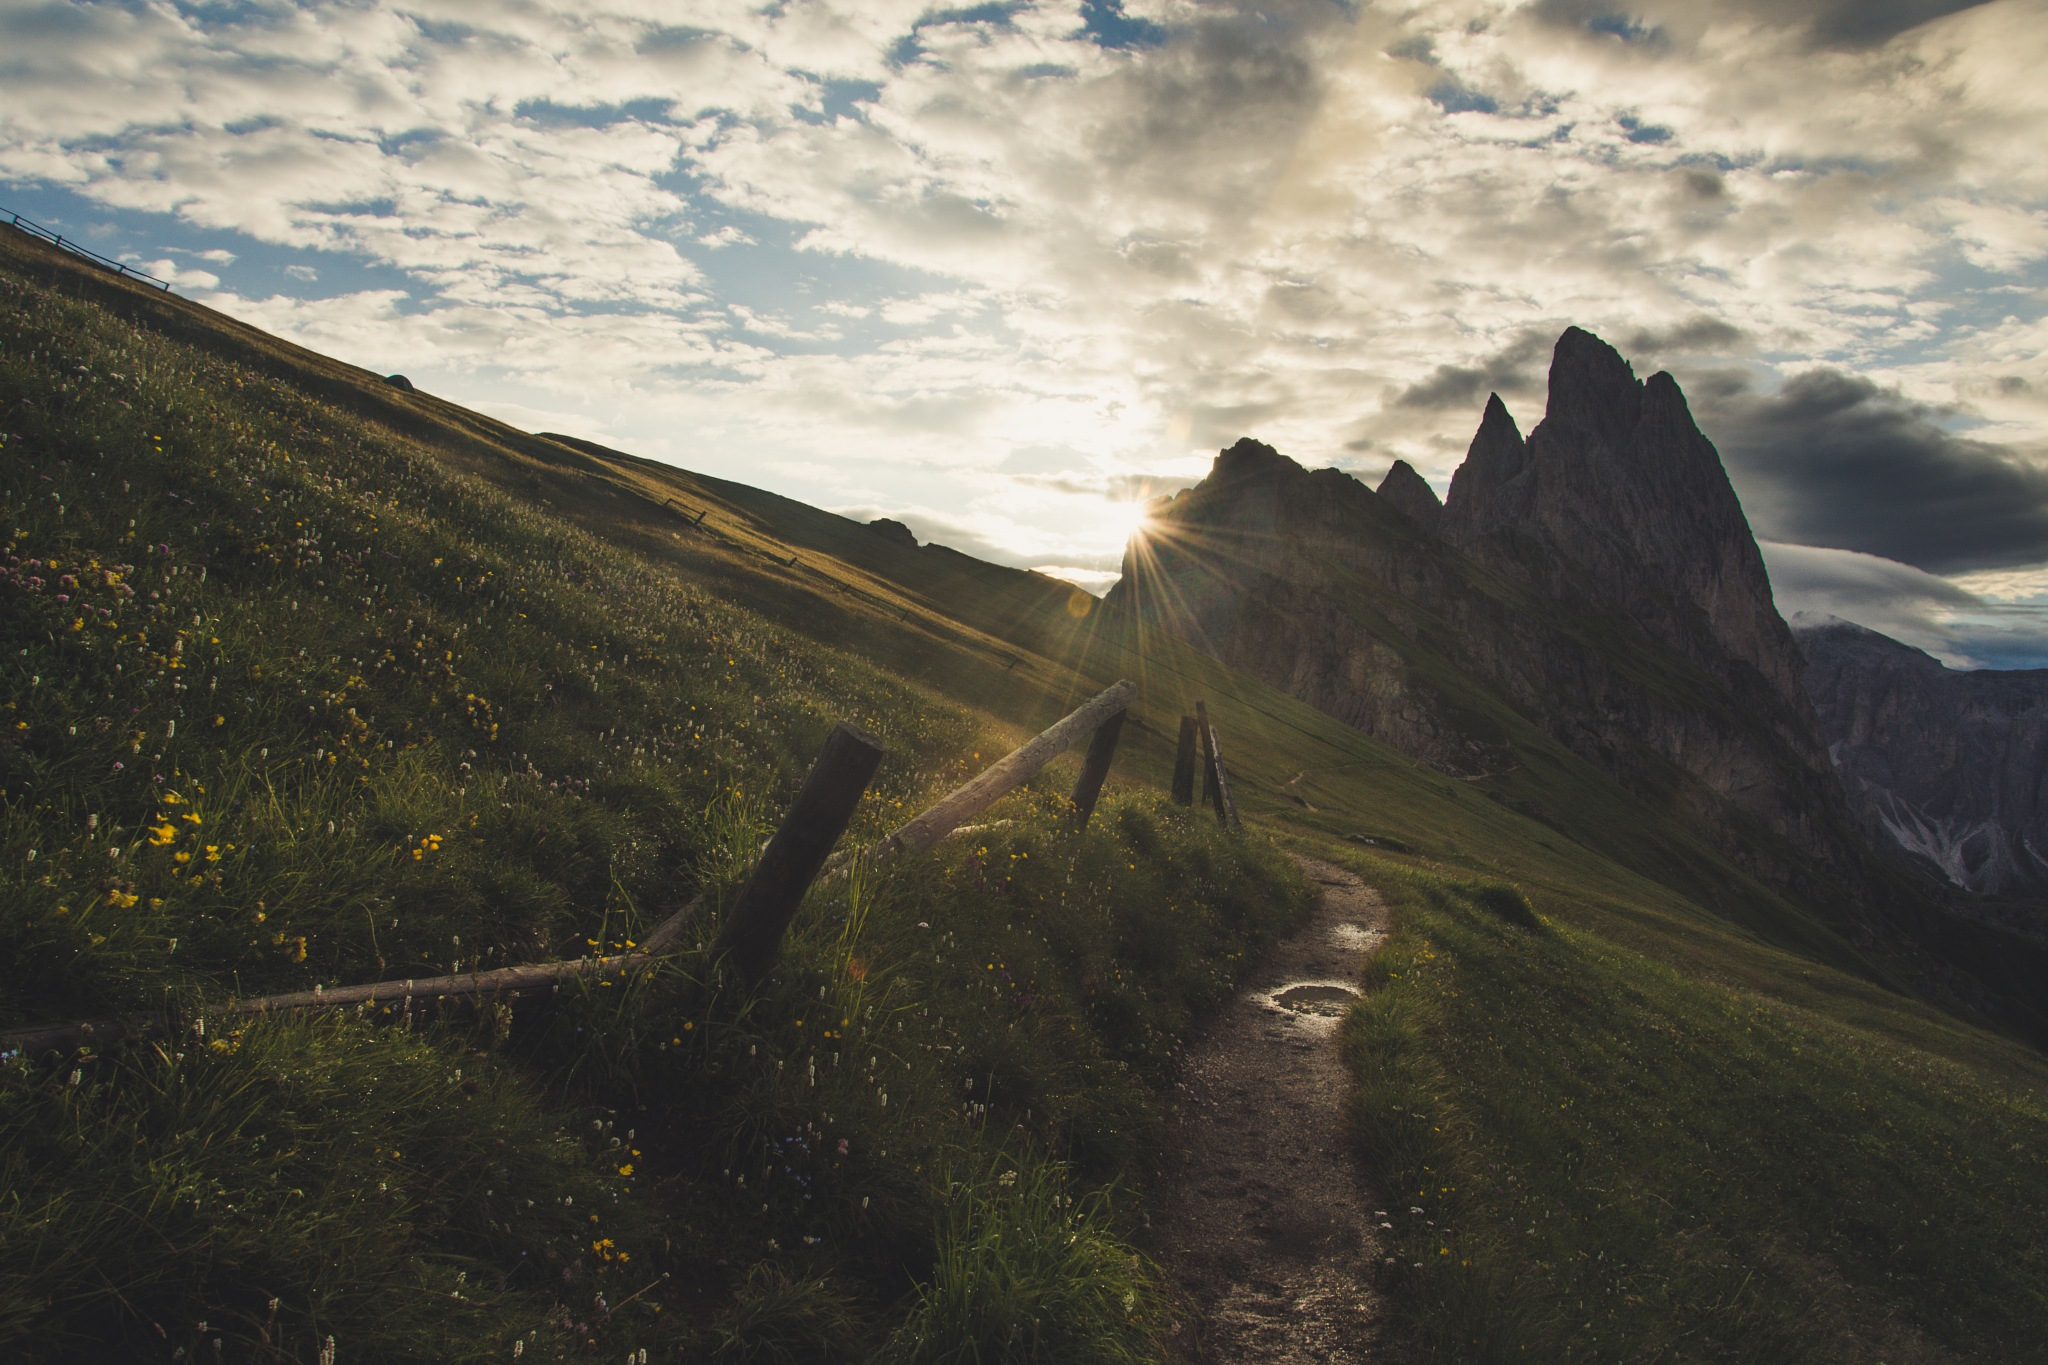 Sunrise at Seceda - South Tyrol by ujomux_dev